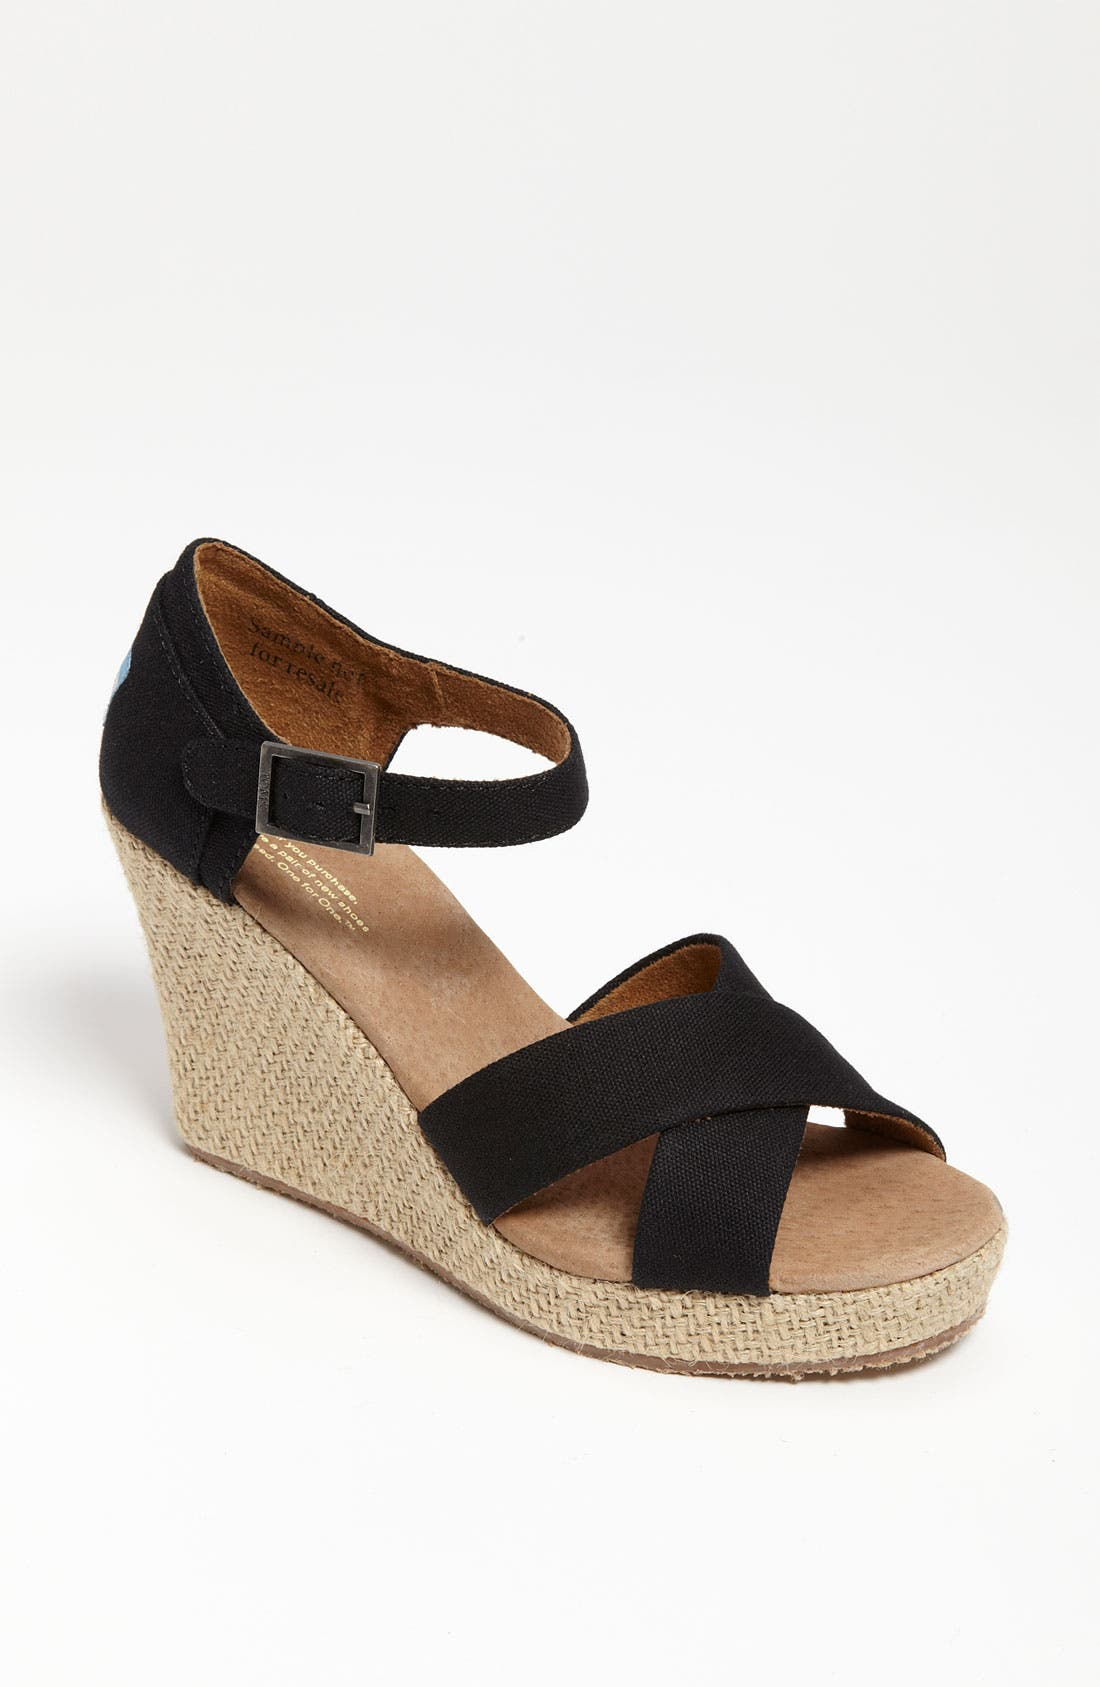 Alternate Image 1 Selected - TOMS Canvas Wedge Sandal